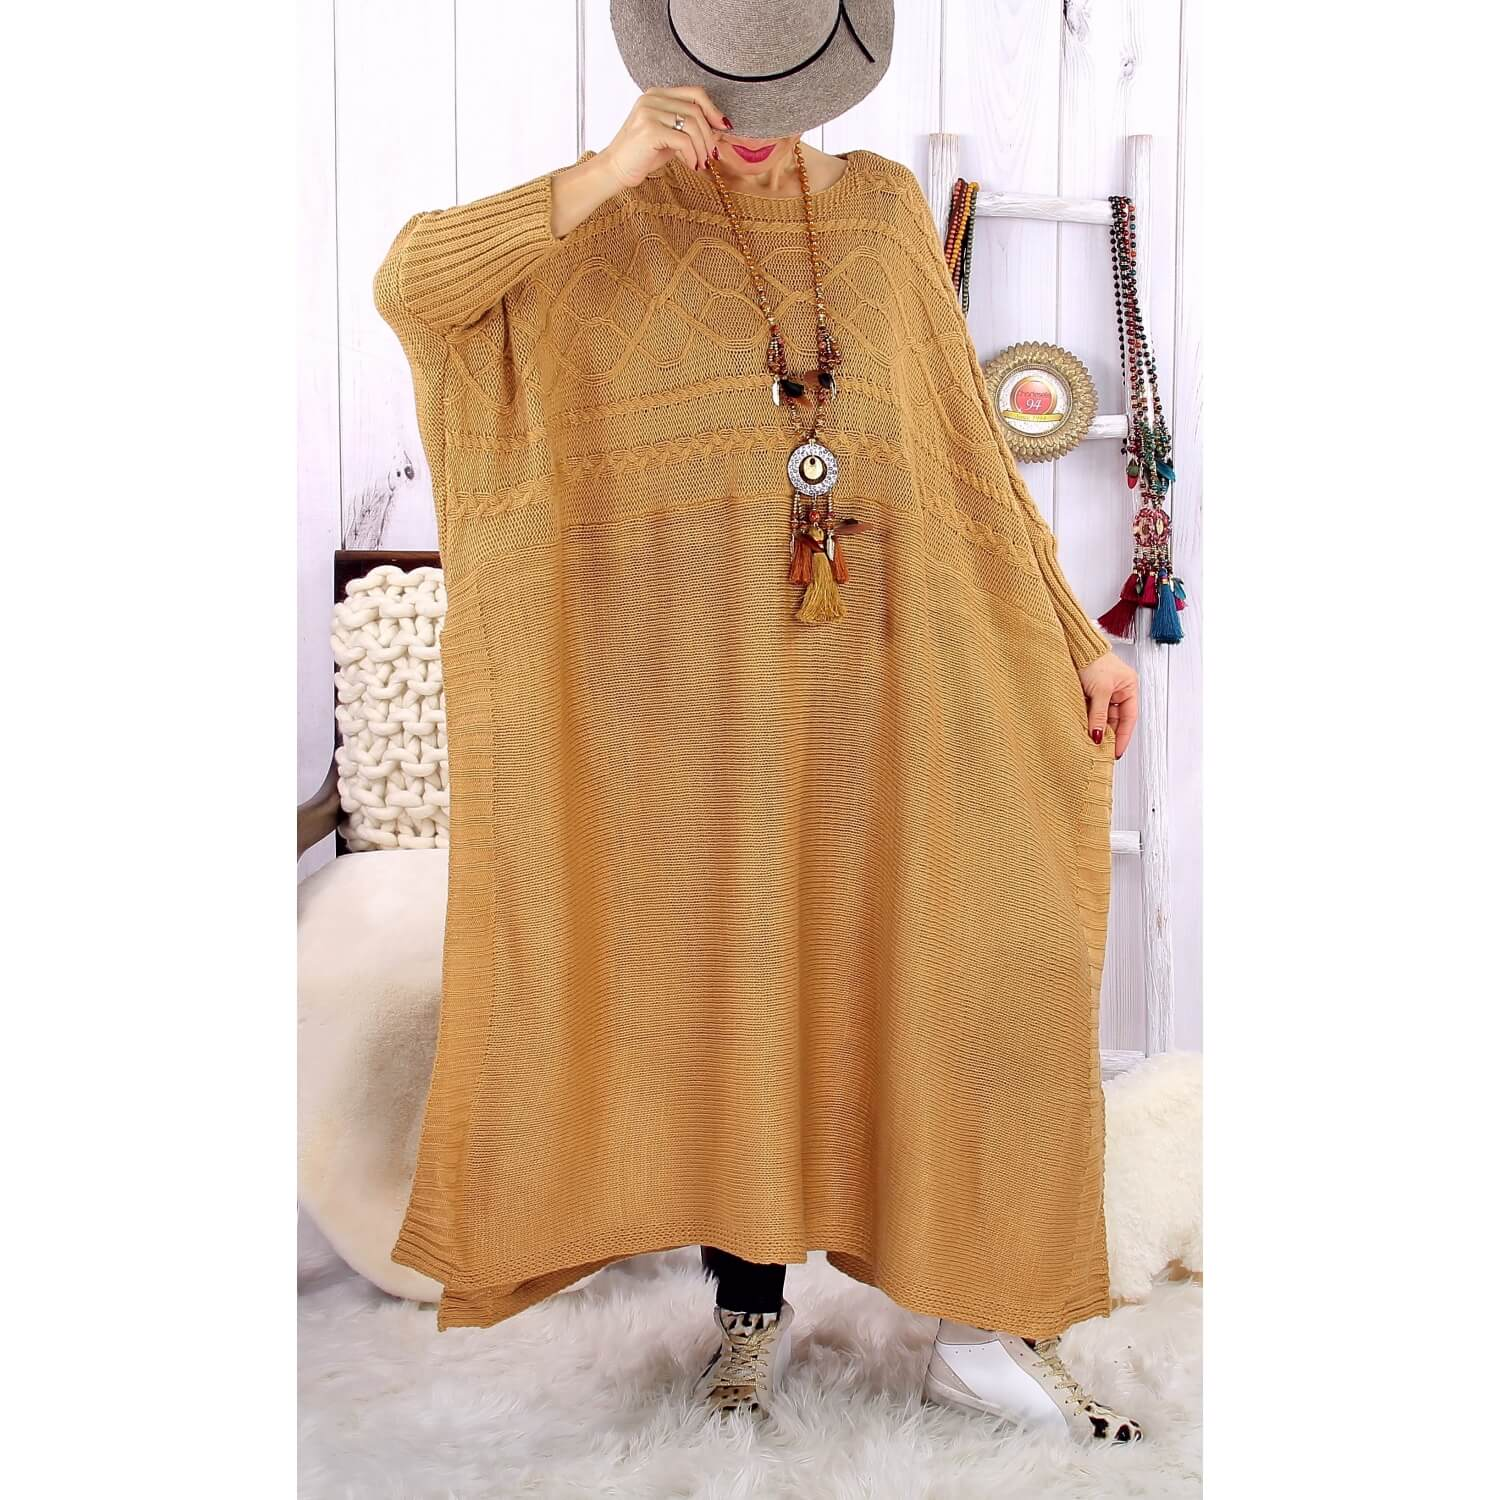 Robe Pull Poncho Grande Taille Hiver Camel Loco Charleselie94